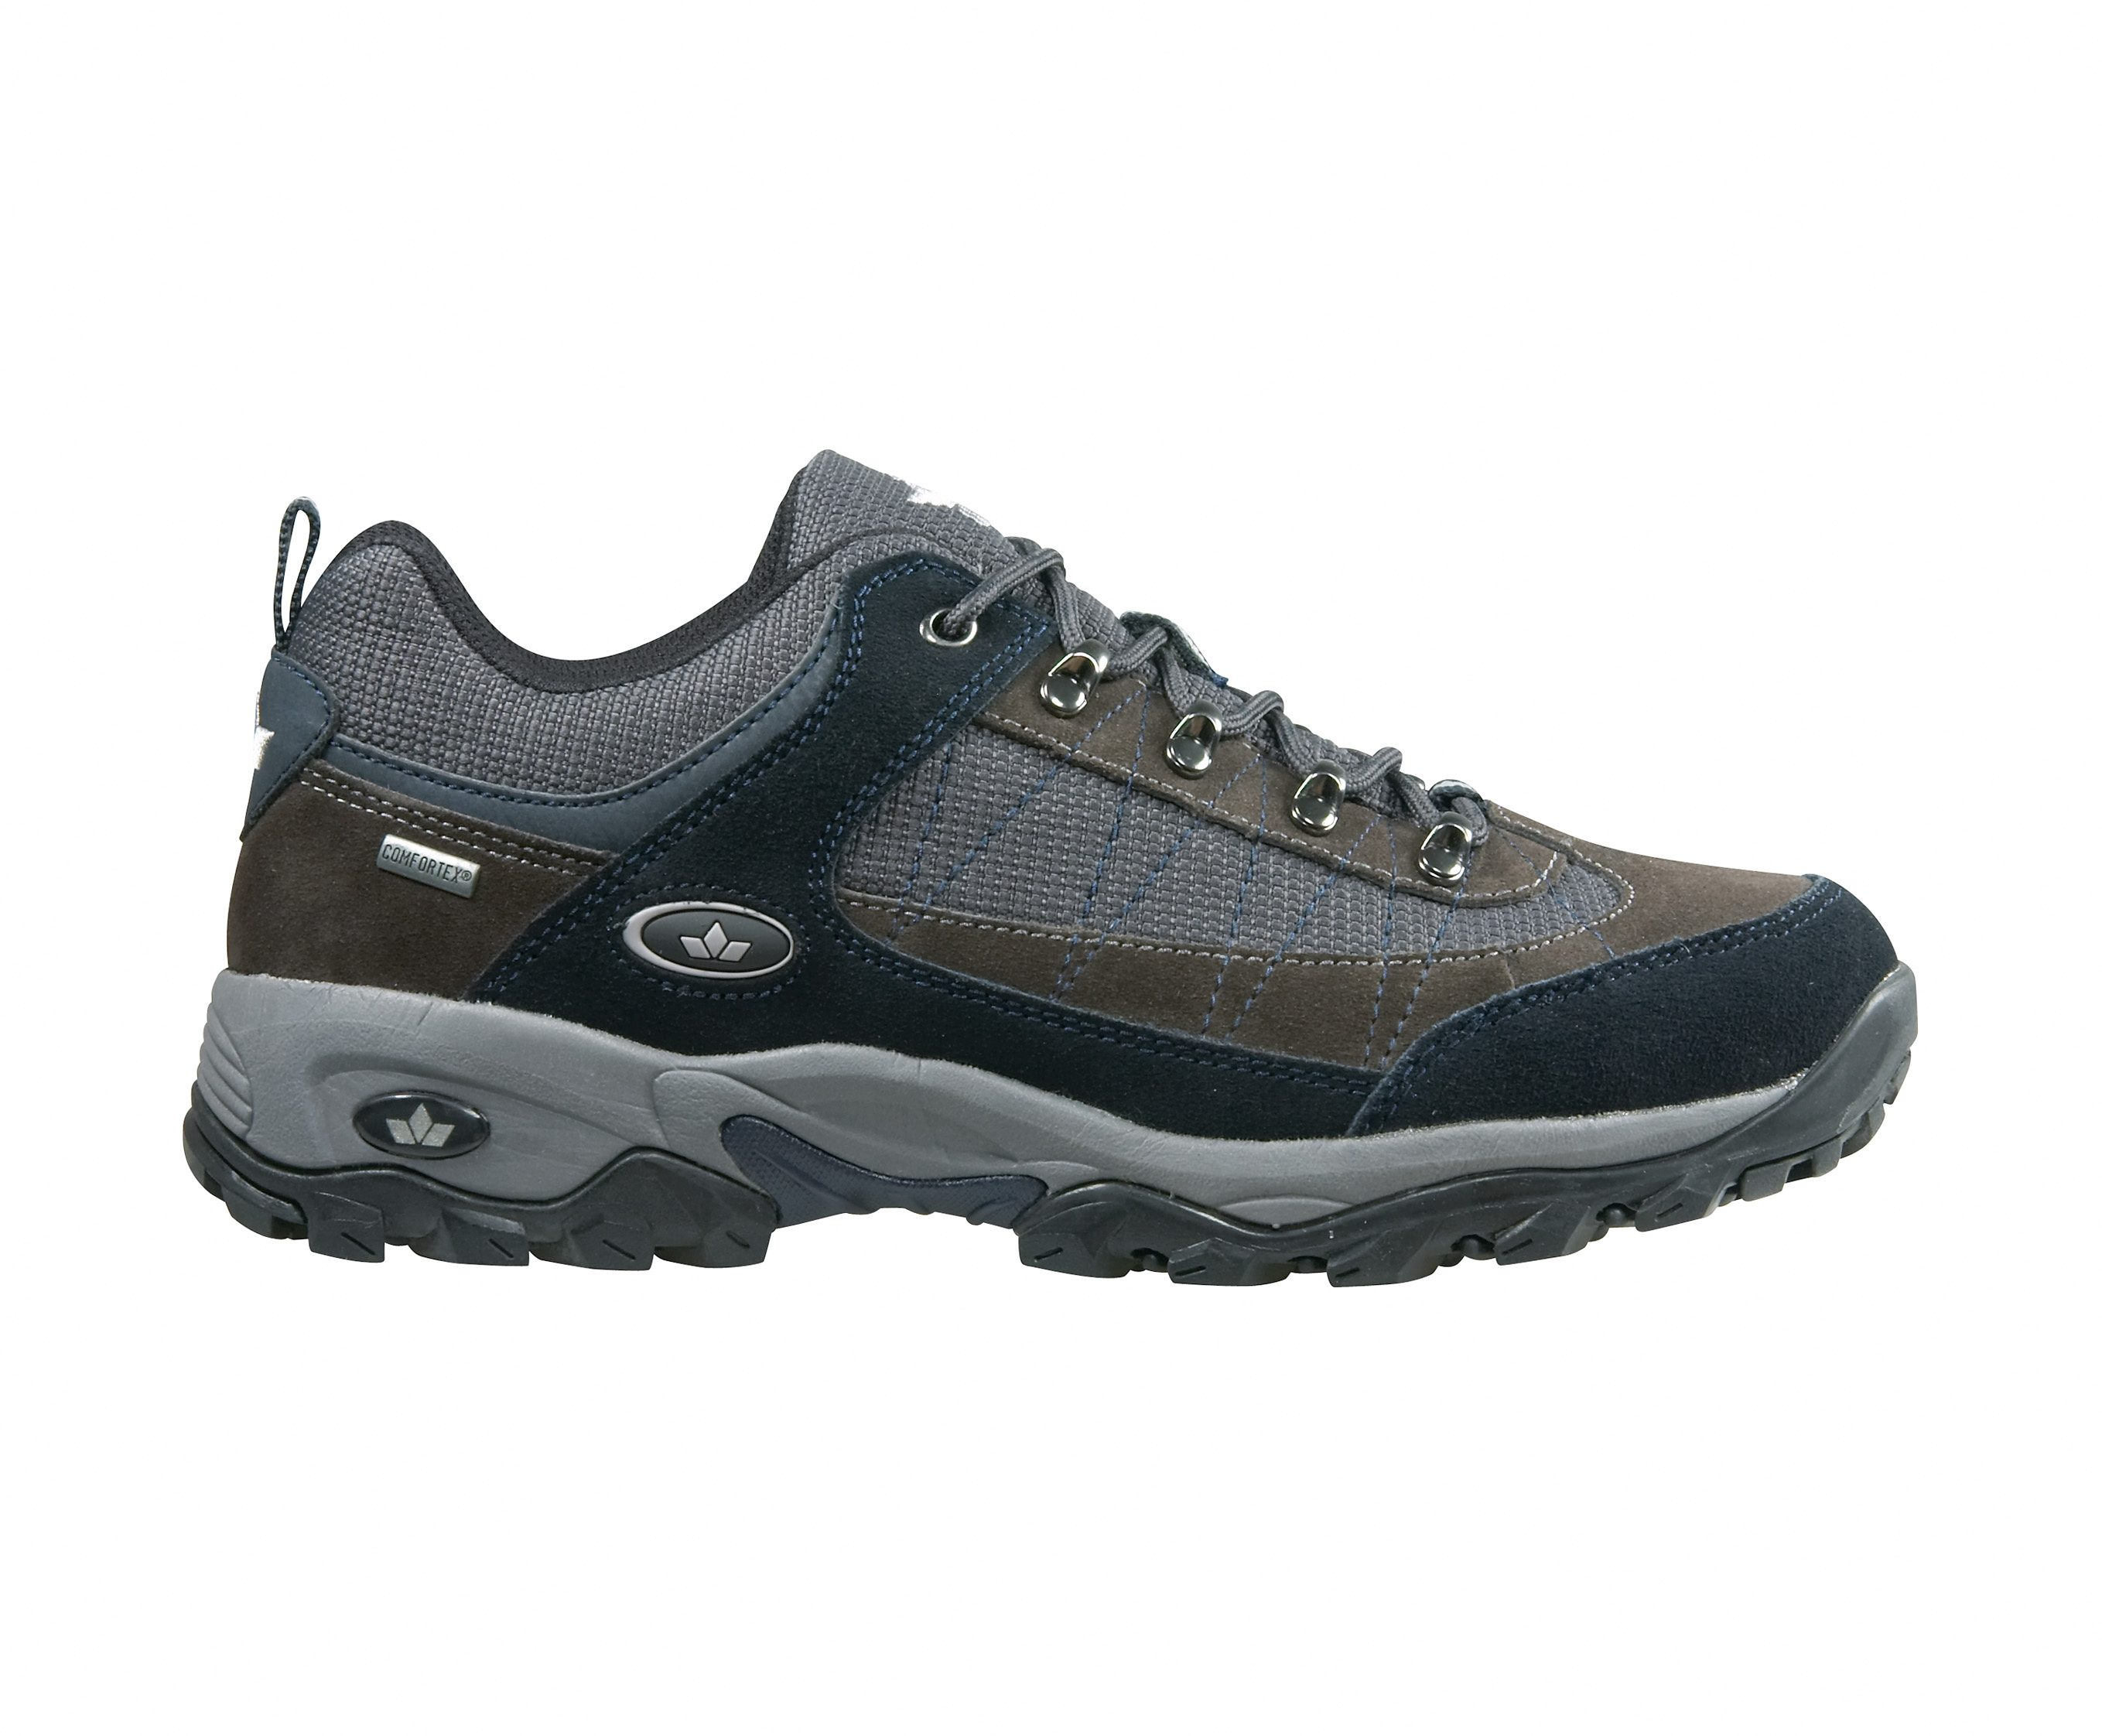 Lico Outdoorschuh Funktioneller Aus Veloursleder KaufenOtto Online »santana« ID9WE2H